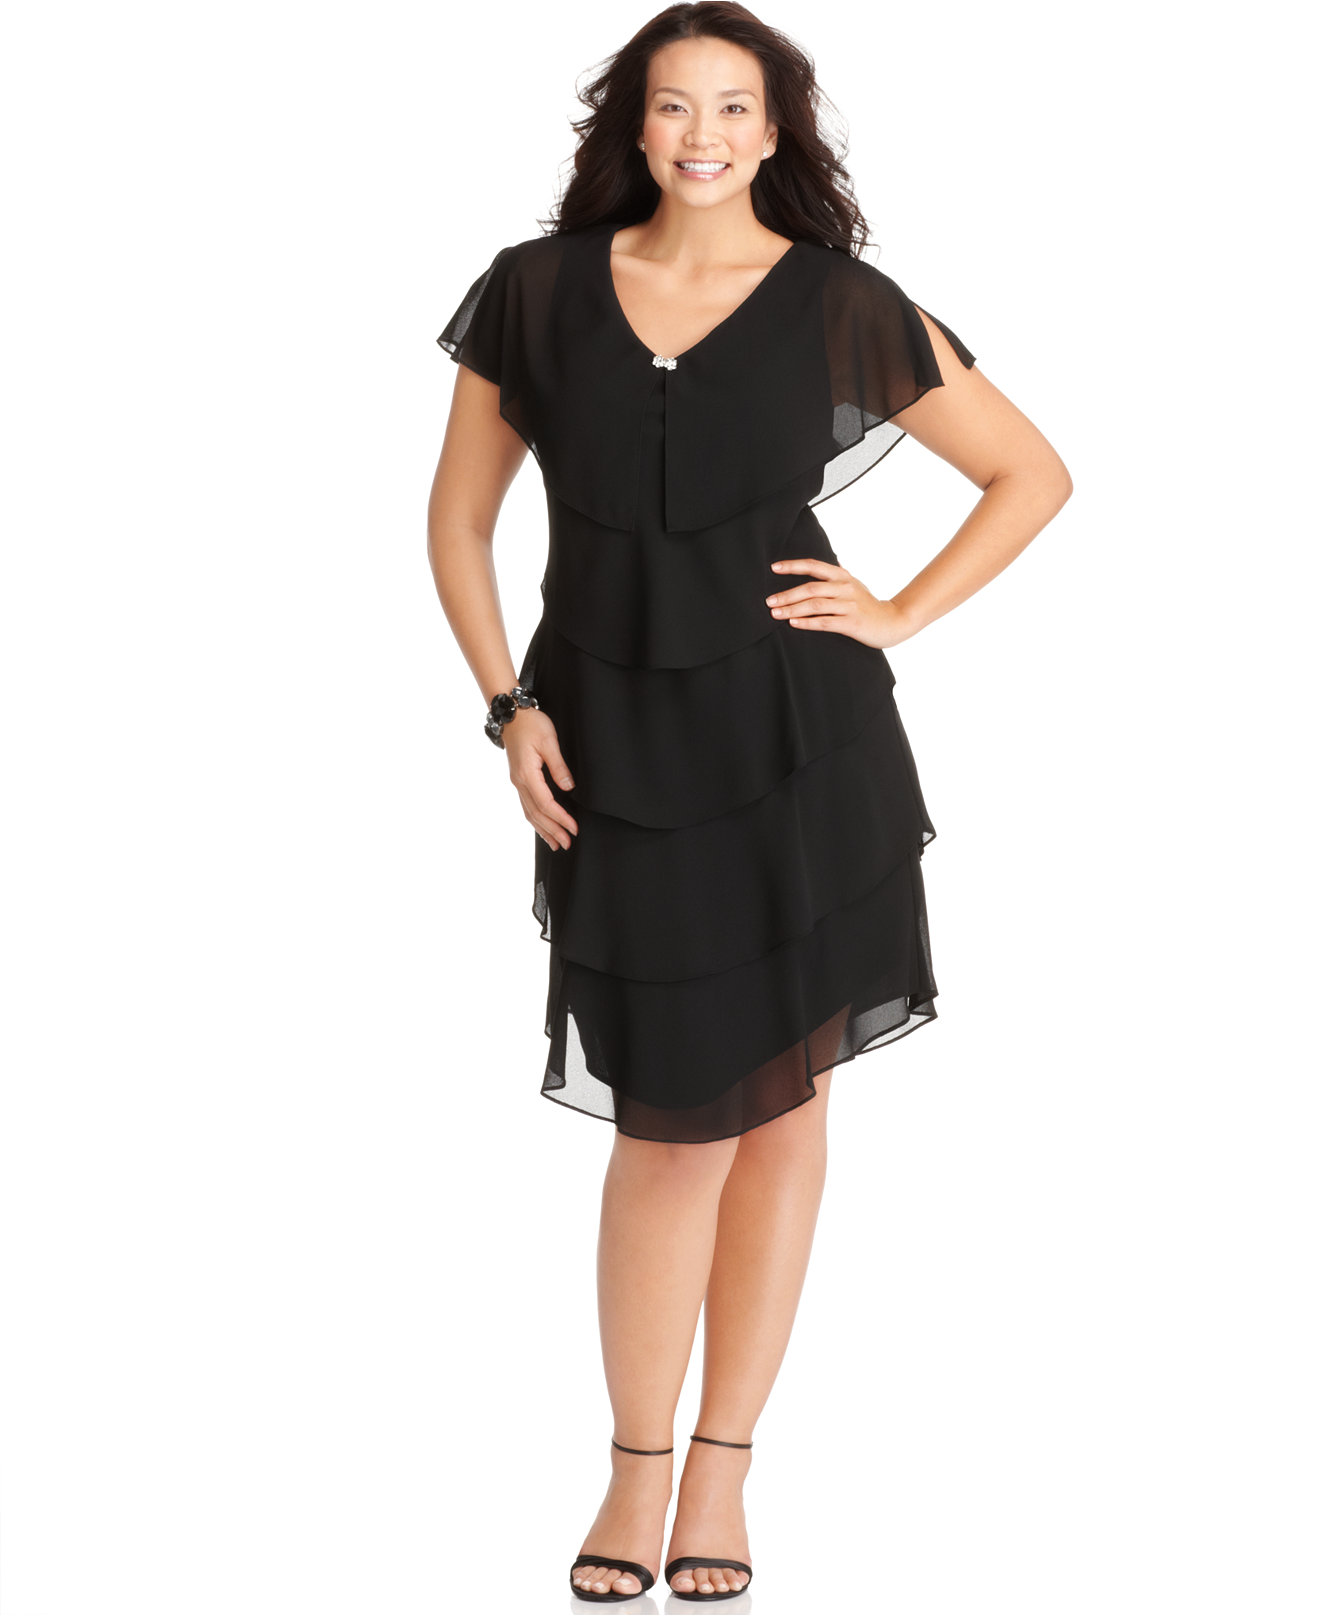 Kimono Sleeve Plus Size Dress Patra Plus Size Short Sleeve